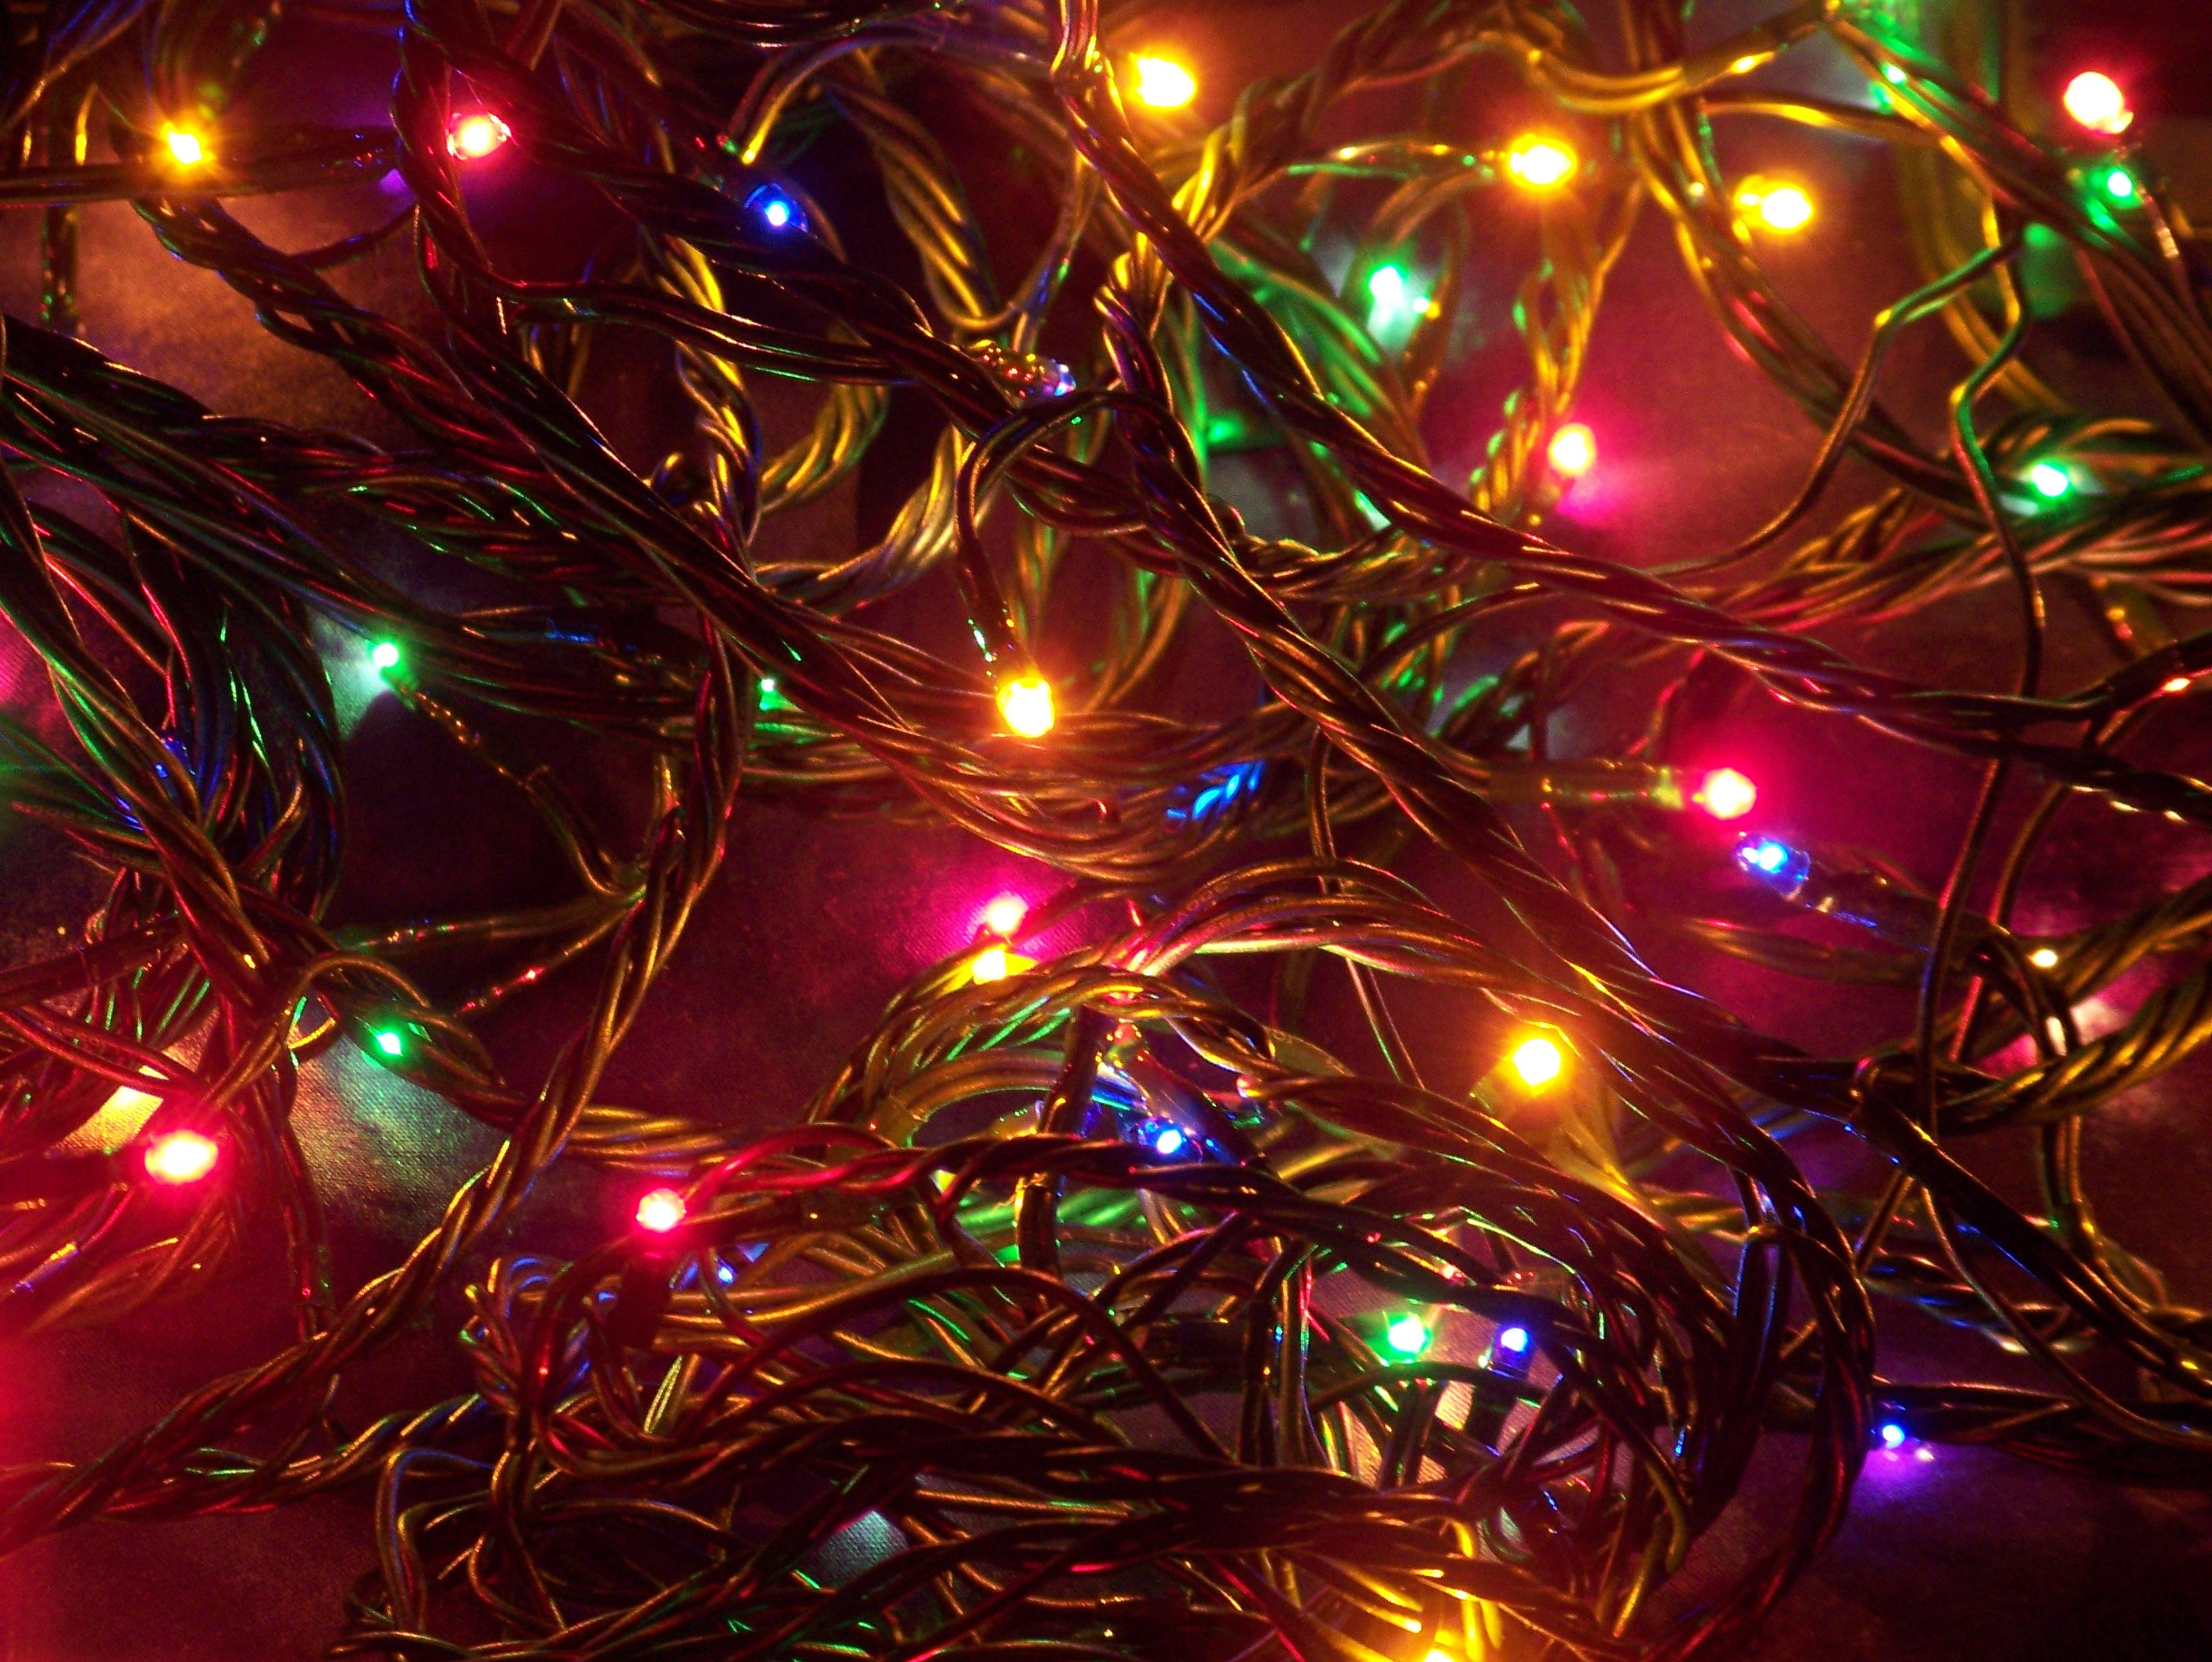 2832x2128 String Of Christmas Tree Lights